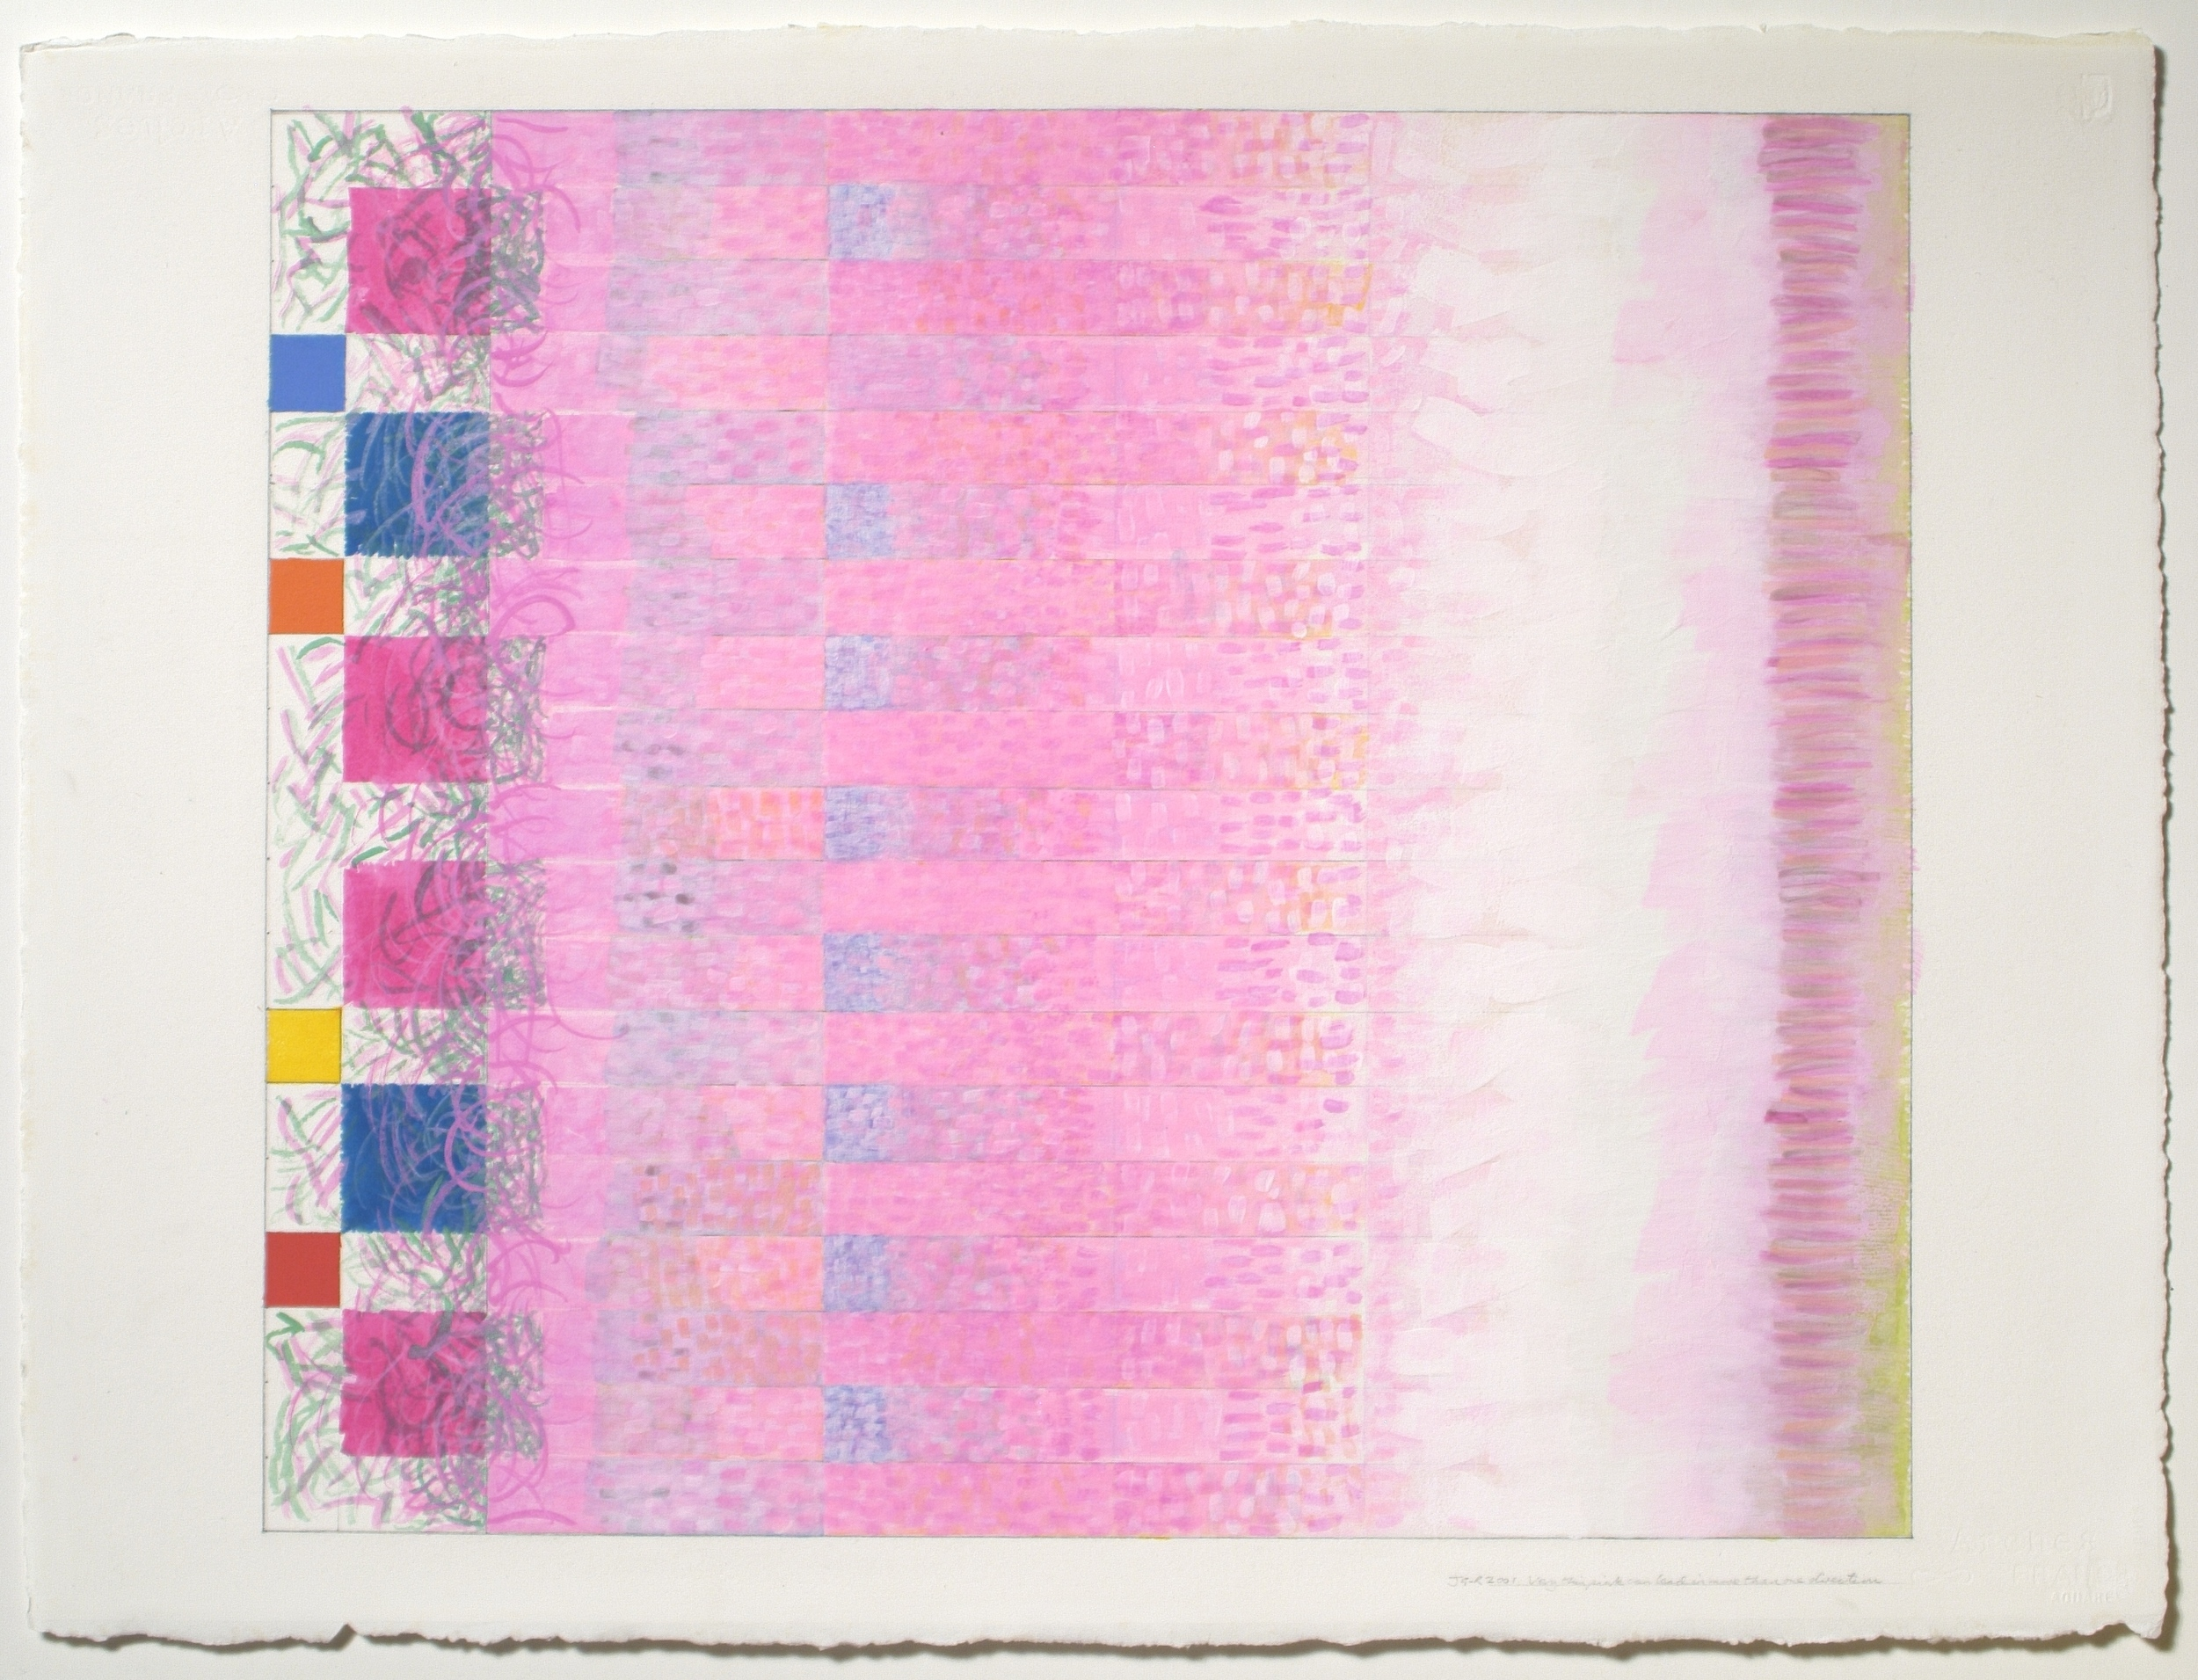 """Very Thin Paint Can Lead in More Than One Direction, 2001, gouache on paper, 20 3/16""""x23 3/8"""" (image), 22 3/4""""x30 1/2"""" (paper)"""